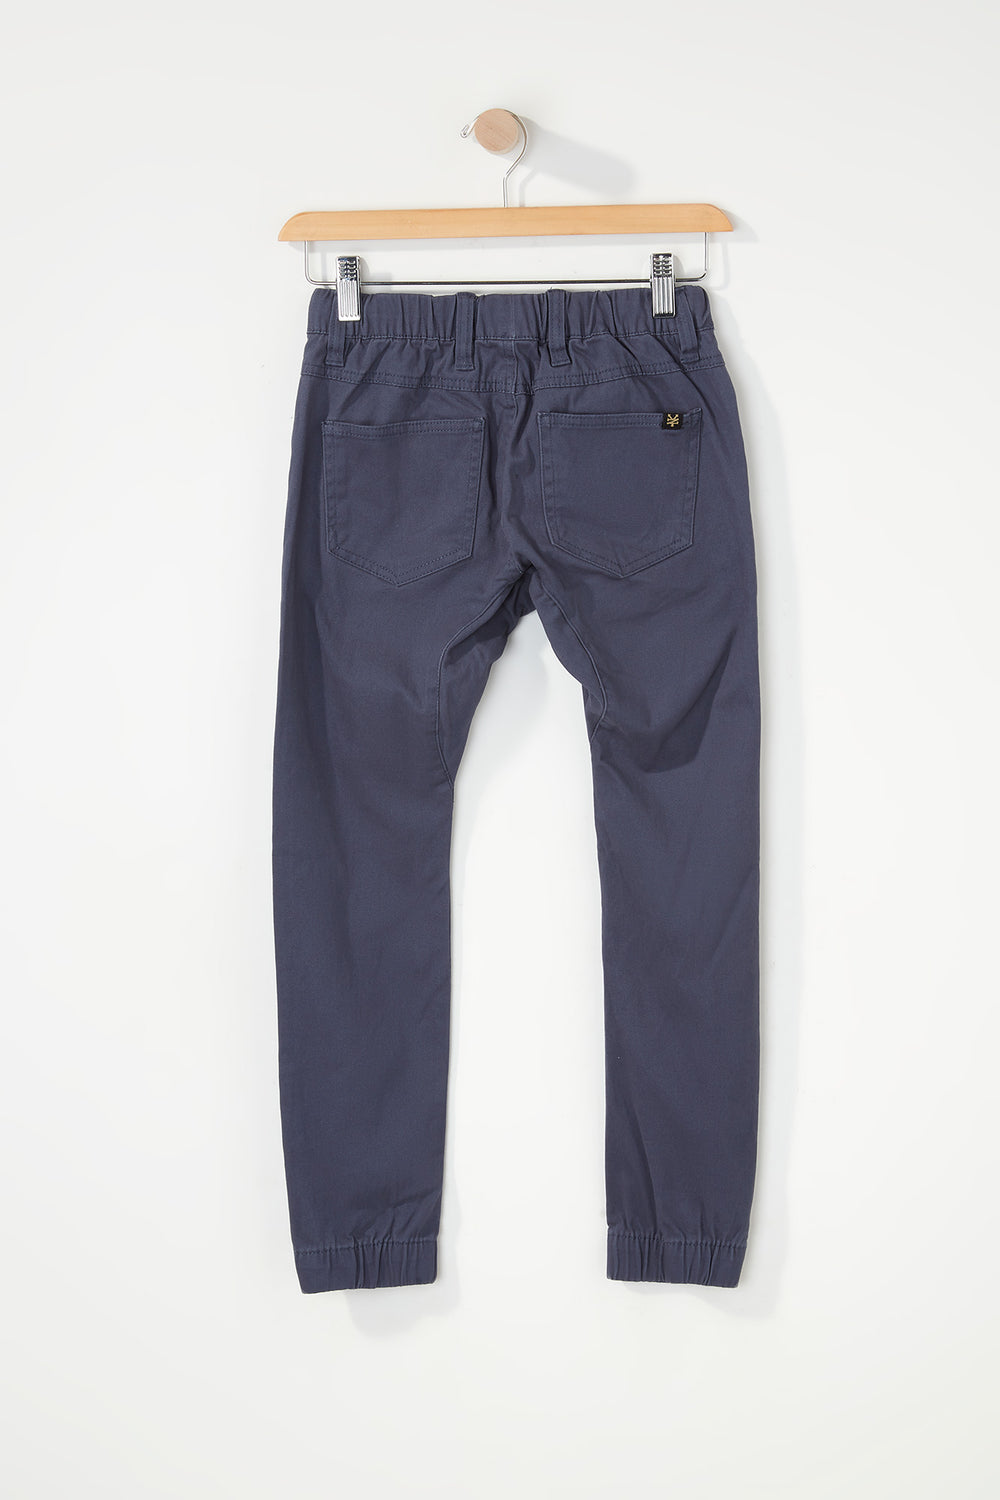 Zoo York Boys 5-Pocket Jogger Silver